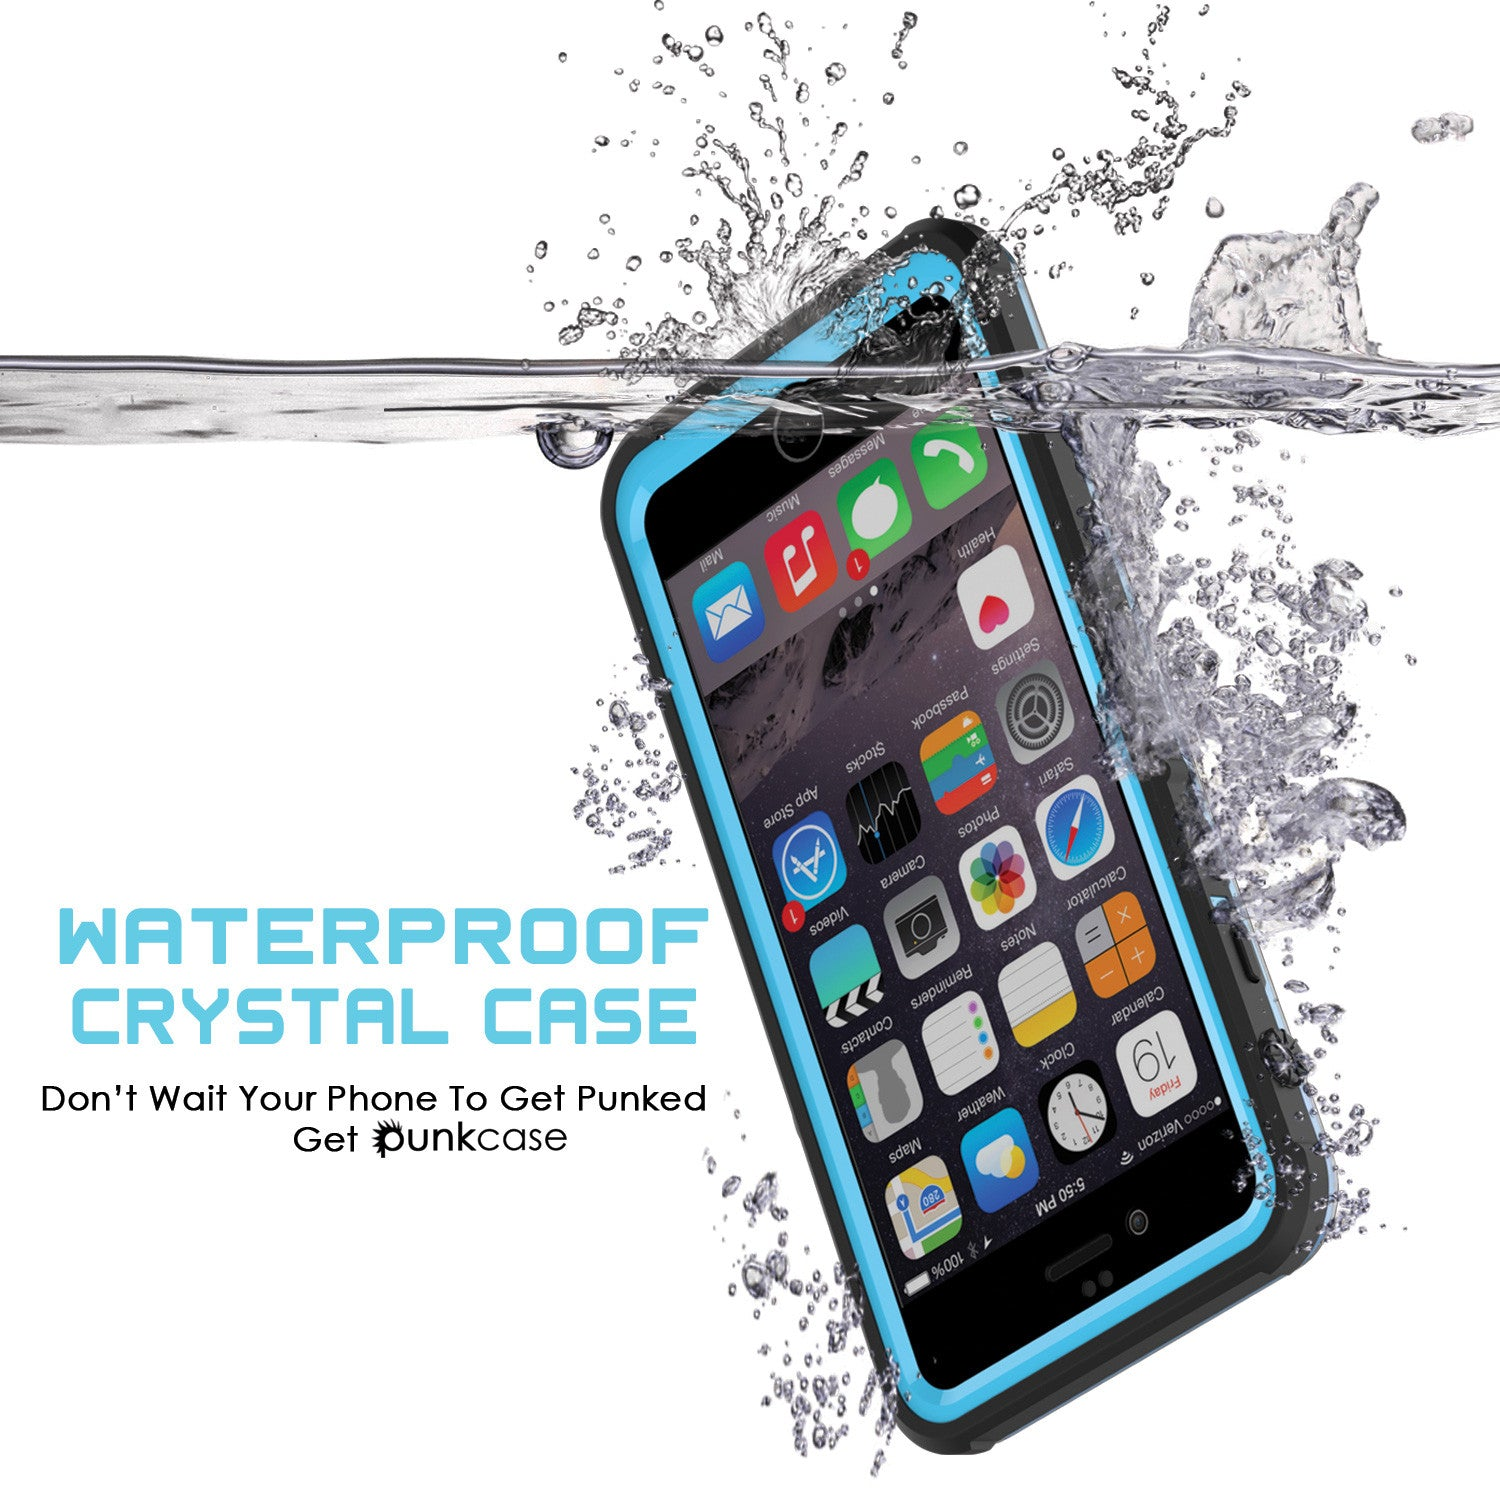 iPhone 6/6S Waterproof Case, PUNKcase CRYSTAL Light Blue  W/ Attached Screen Protector  | Warranty